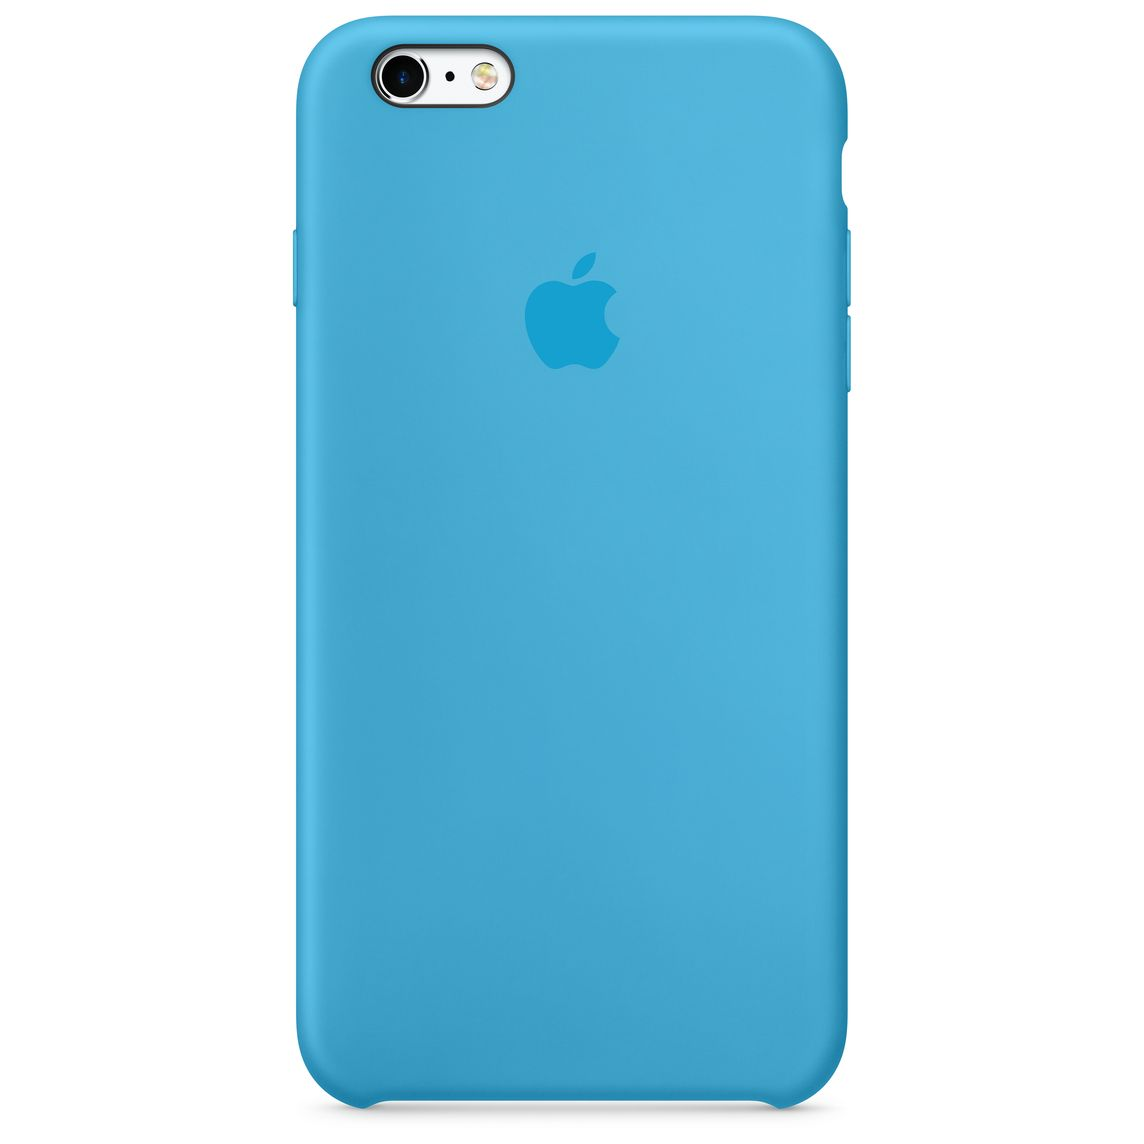 promo code 932b3 f5990 iPhone 6 Plus / 6s Plus Silicone Case - Blue